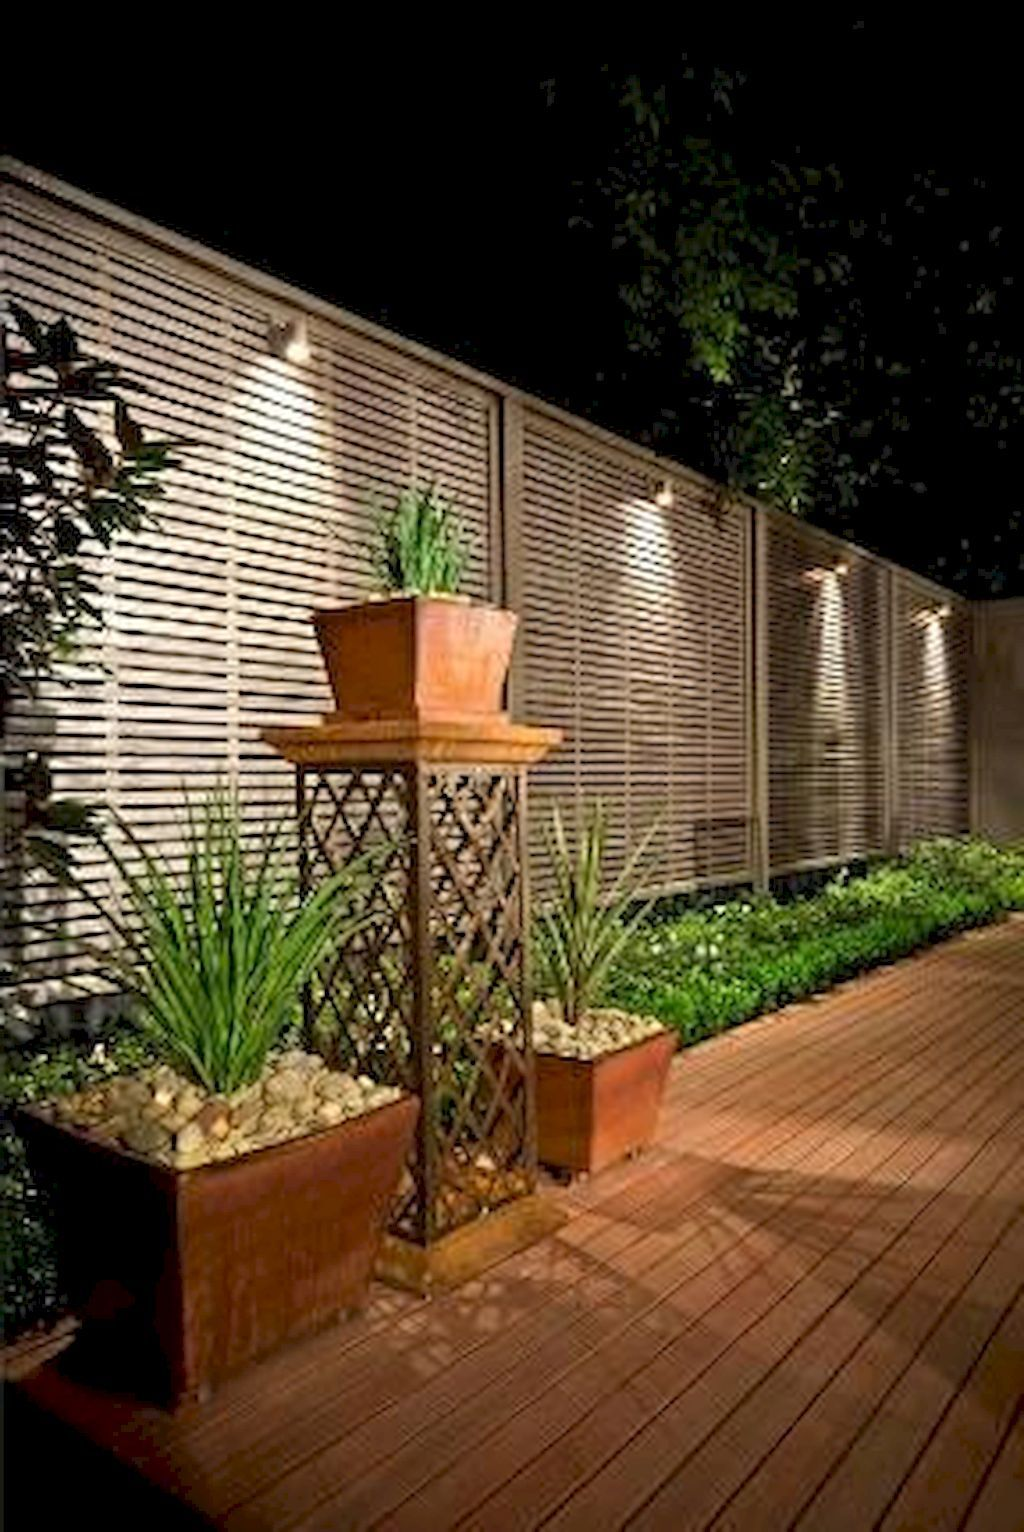 Gorgeous creative privacy fence ideas for gardens and backyards